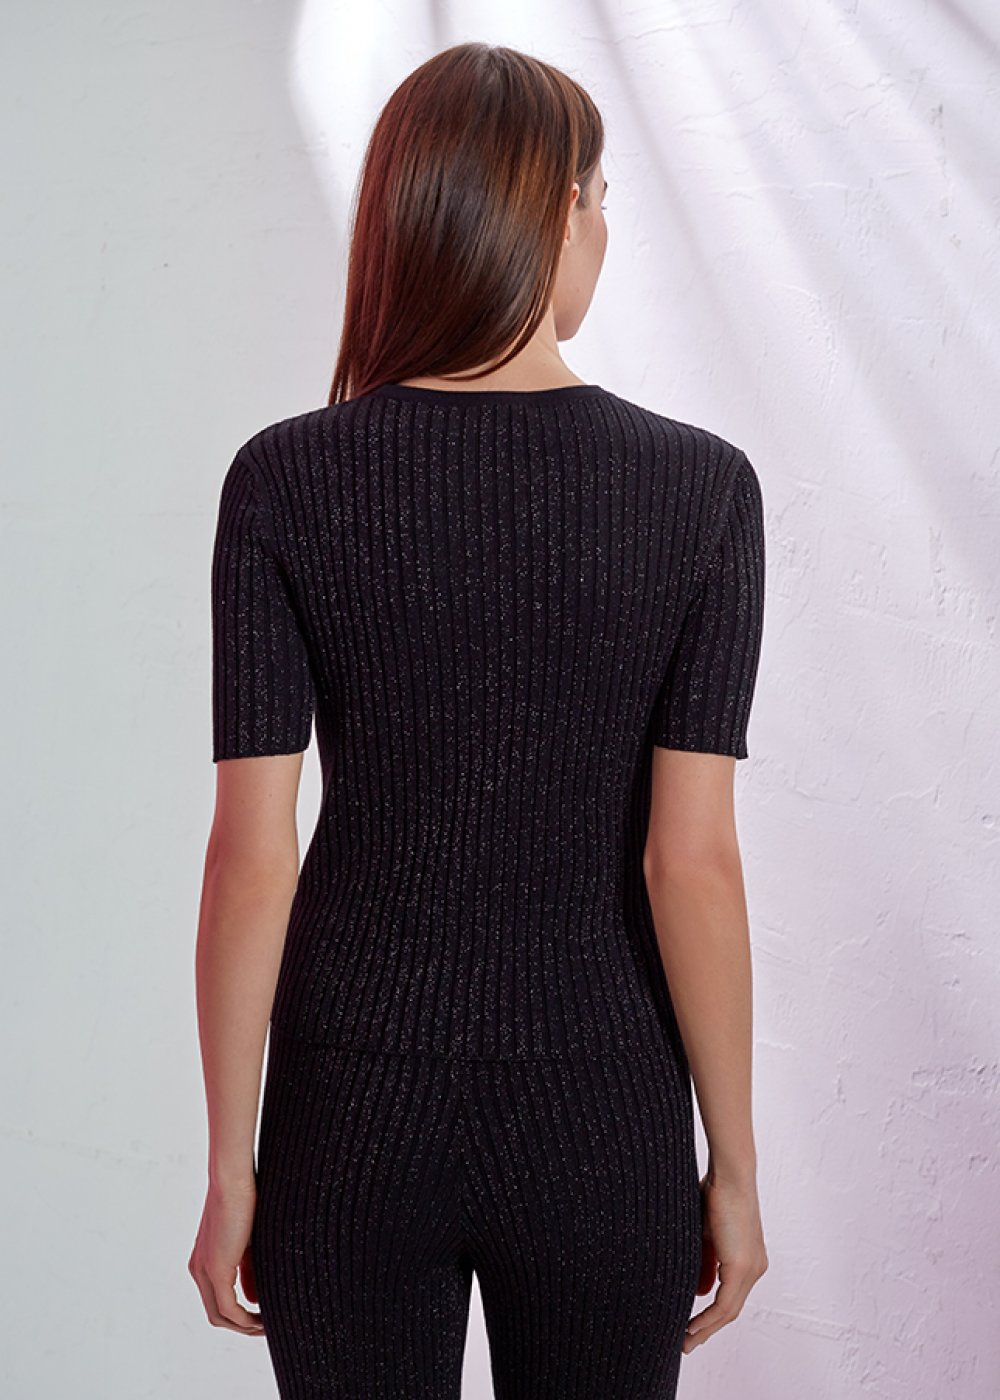 CREW NECK LUREX BLACK KNIT TOP